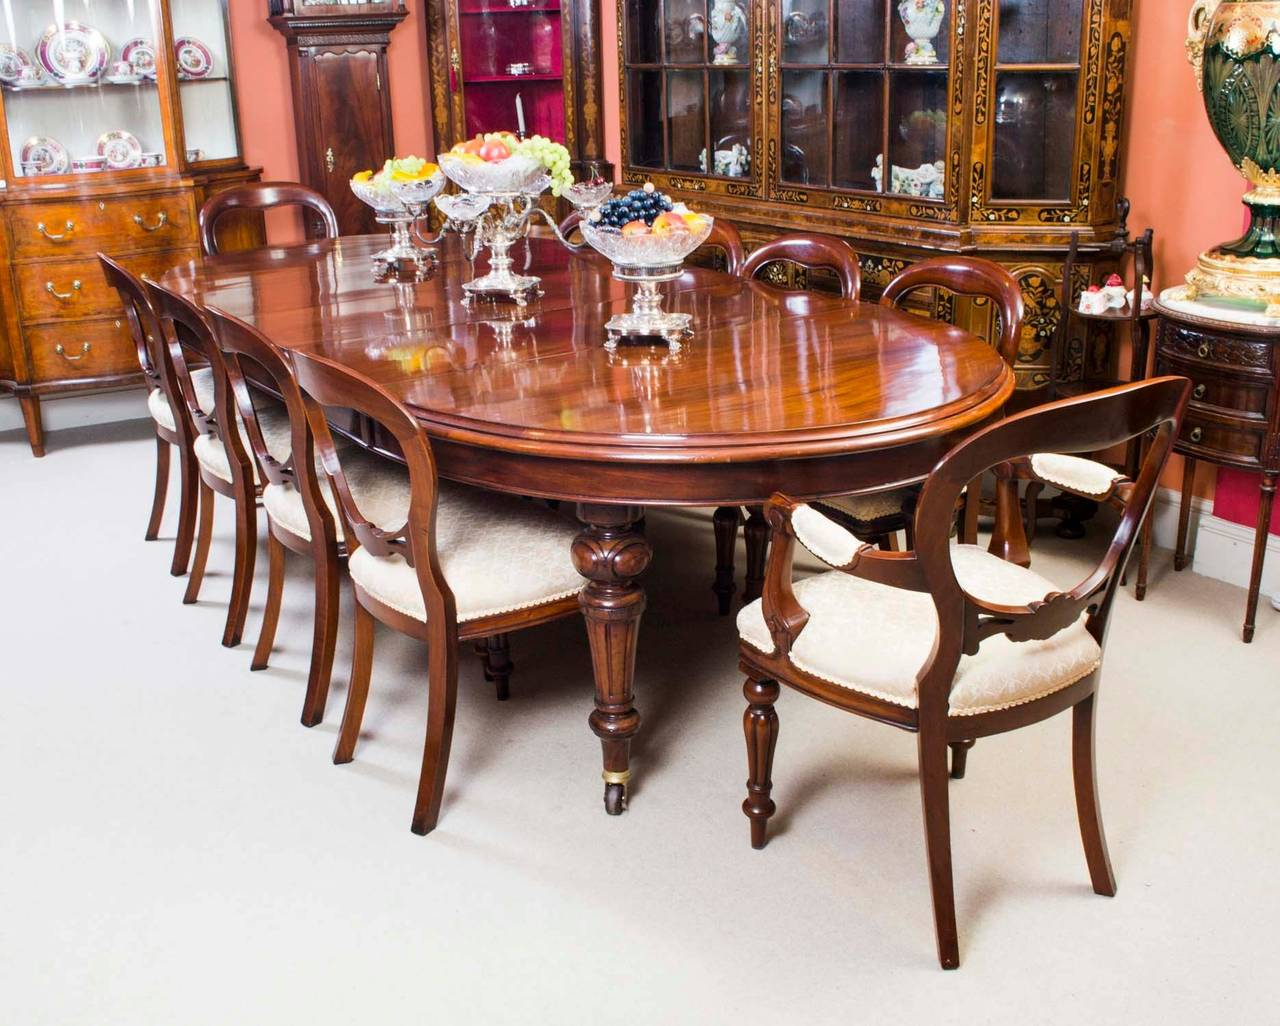 This Is An Exquisite English Antique Victorian Solid Mahogany Extending  Dining Table 10ft, Circa 1870